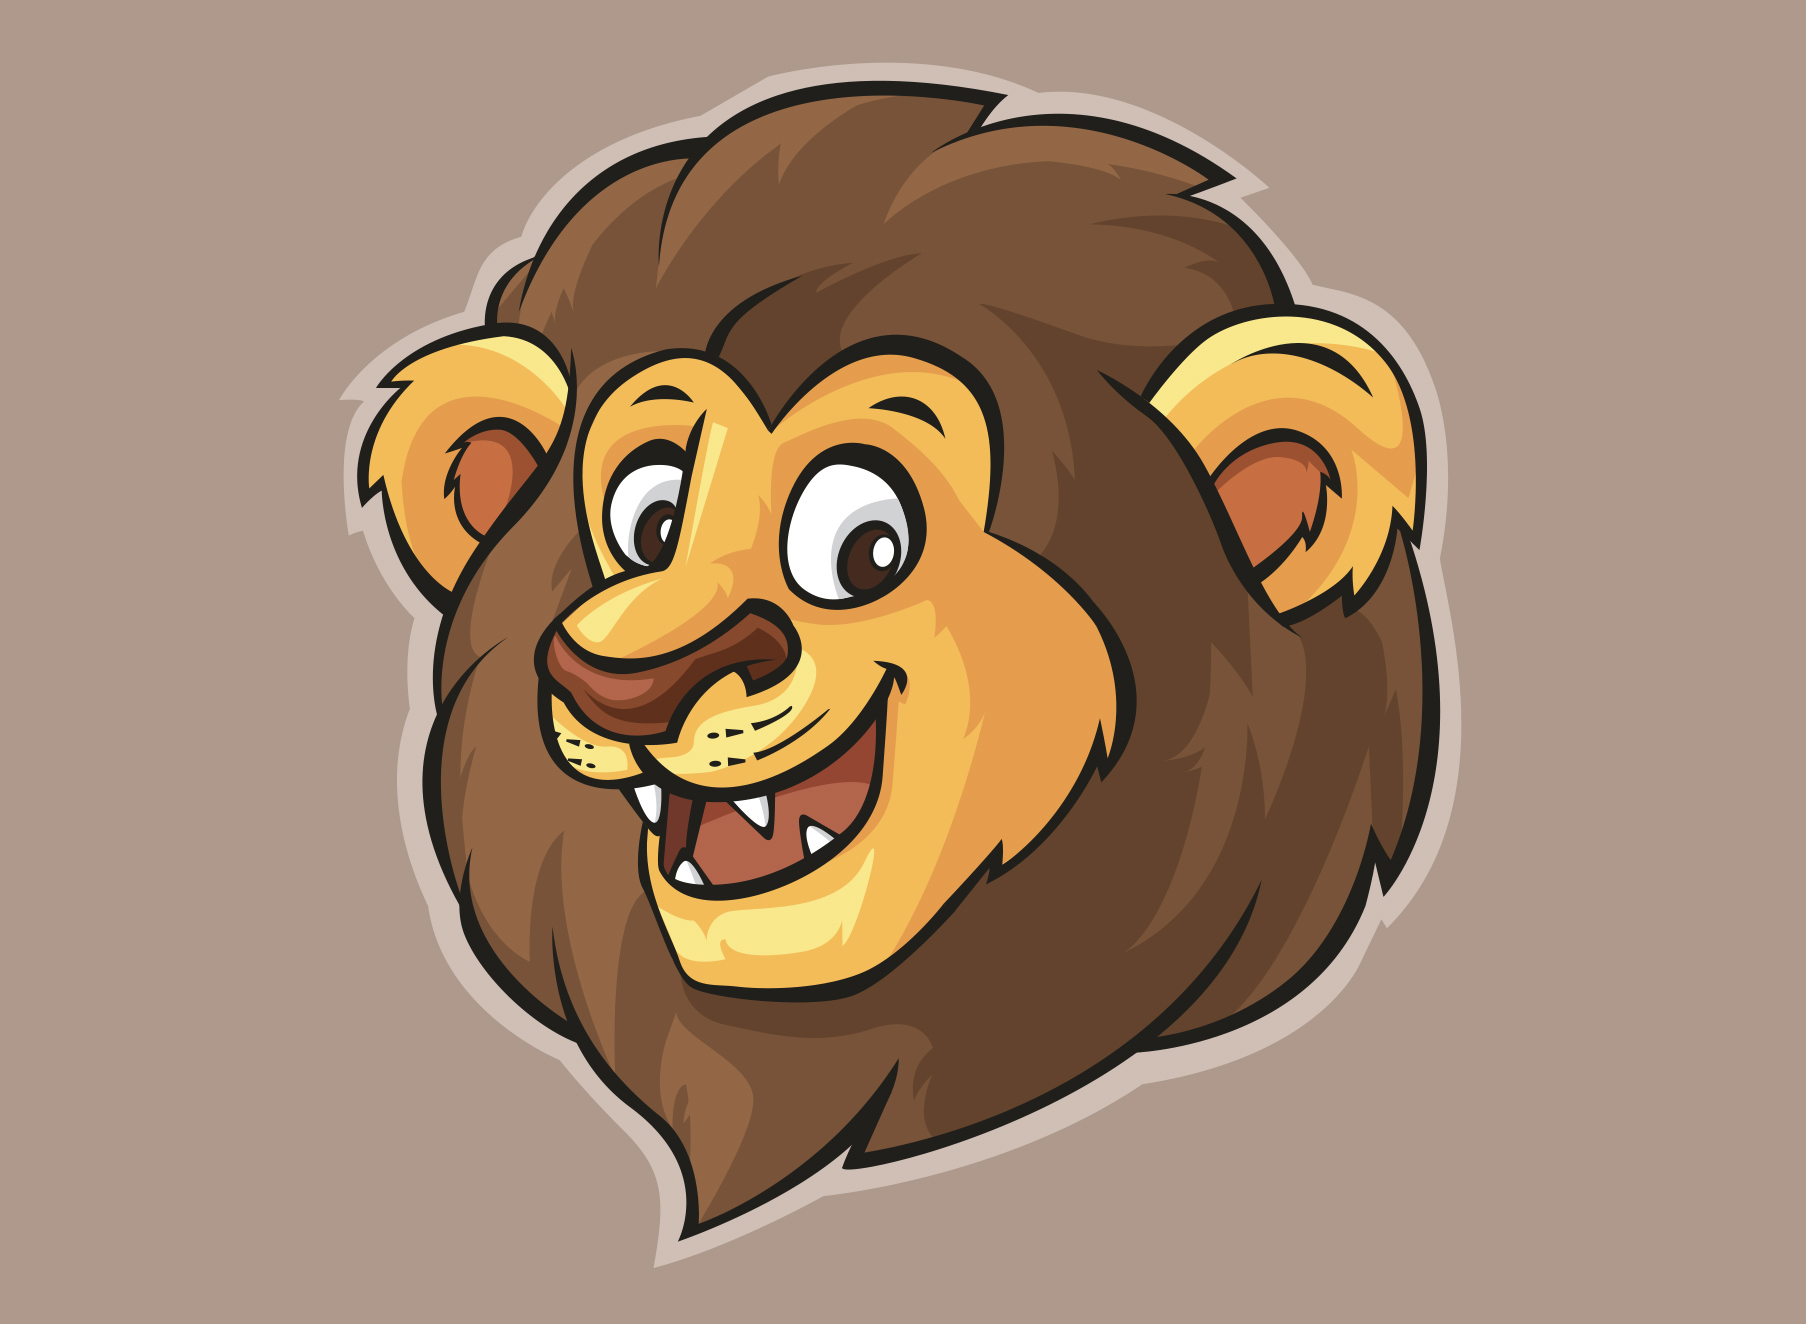 Leo Lion - Illustration - Folio